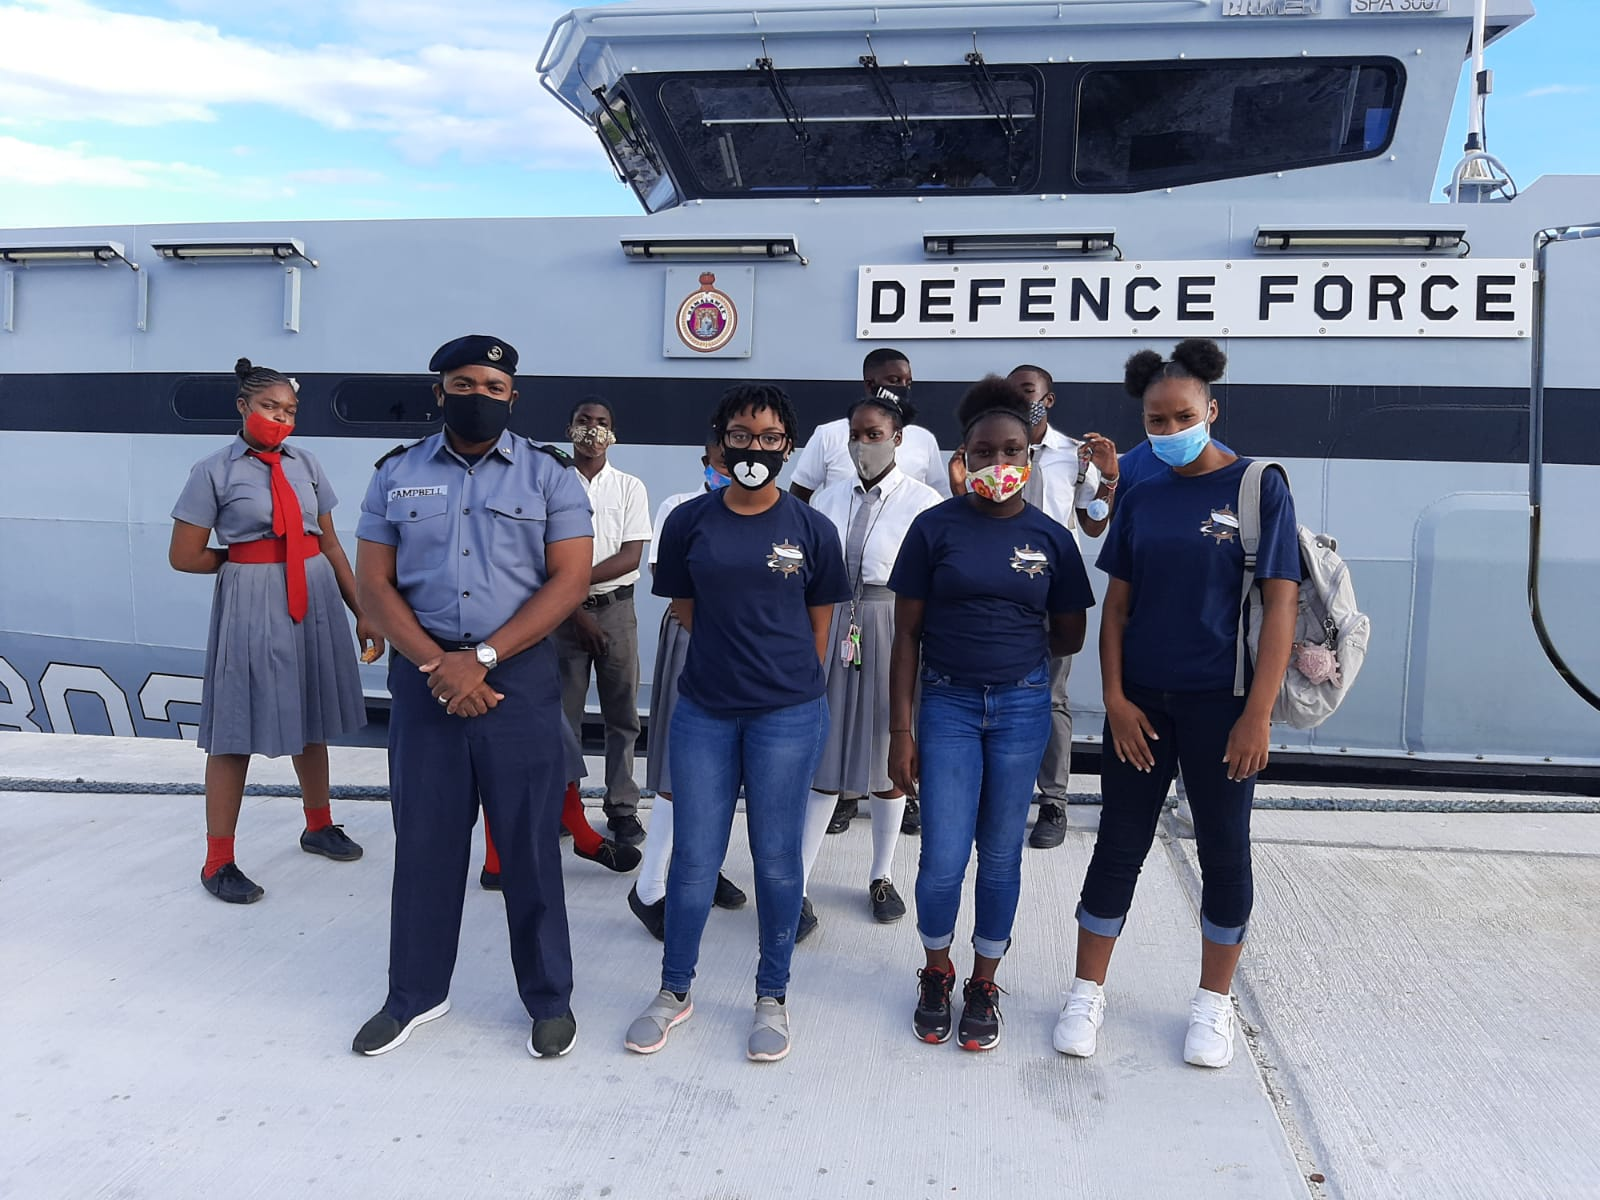 Seafaring remains an attractive option for all genders as The Bahamas notices a sharp rise in the number of females enrolling into its Cadet Corps programme. Click here to find out more.